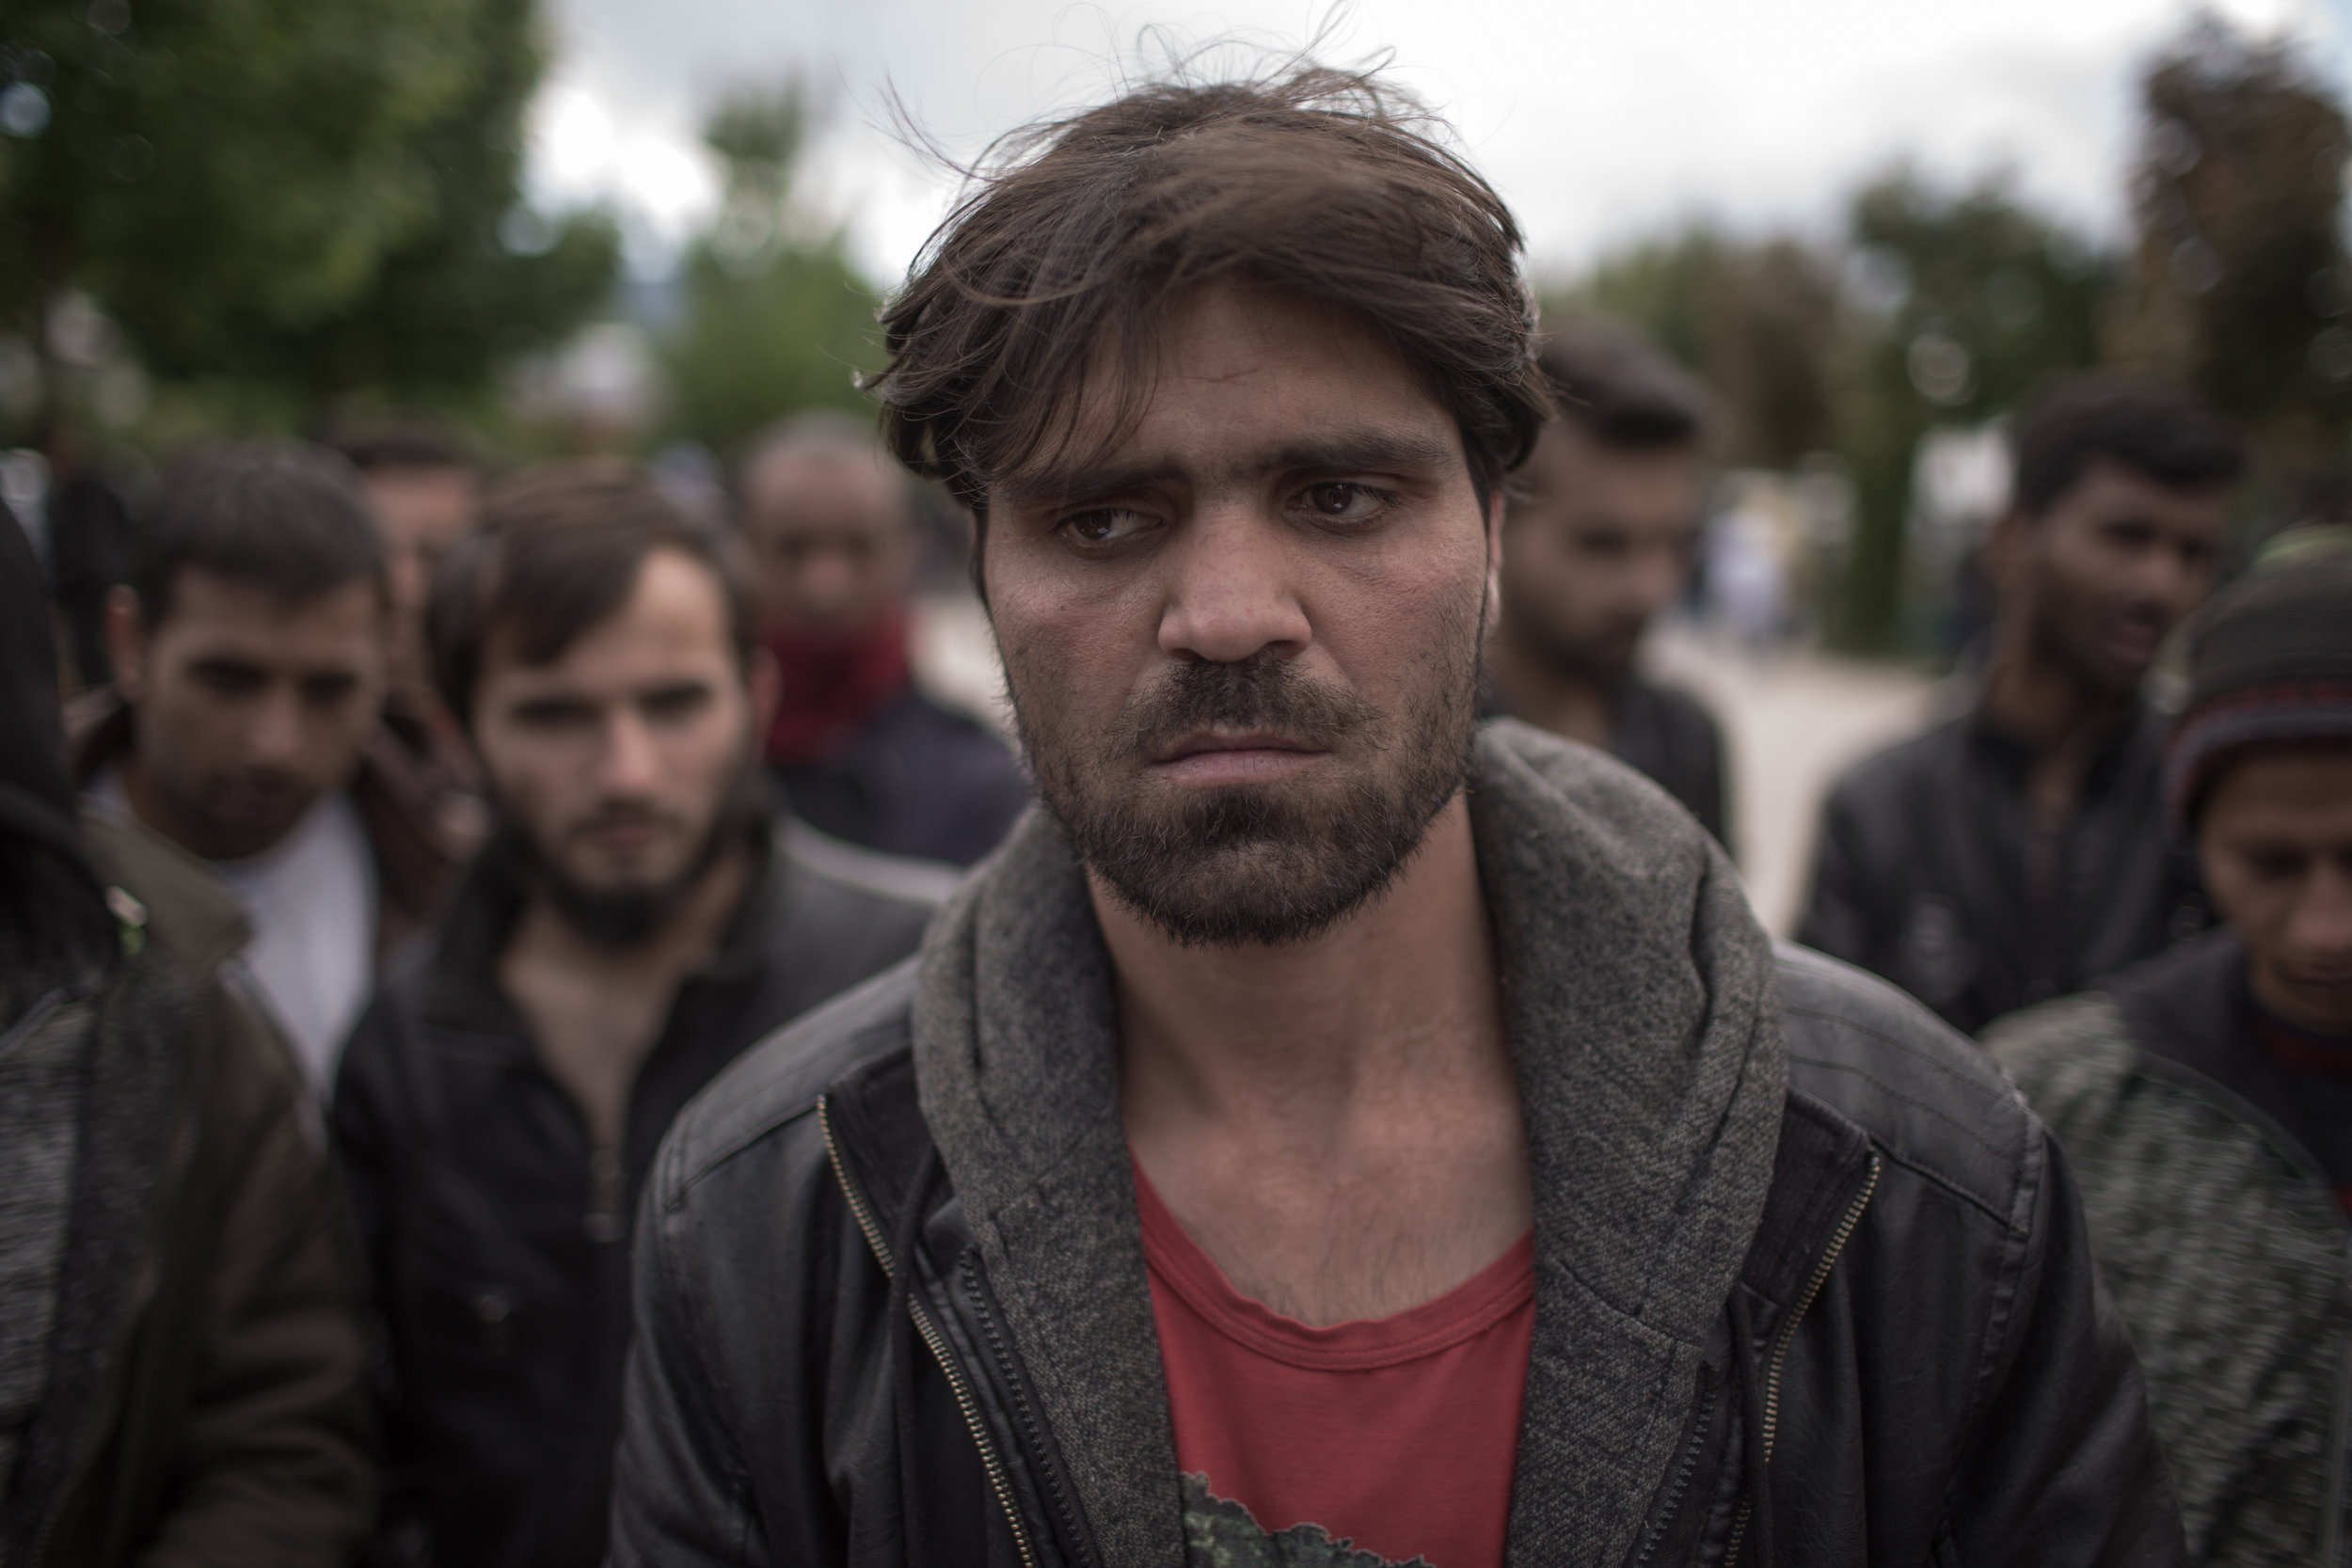 A migrant from Afghanistan in front of Bira in Bihać, one of the largest migrant centres in BiH.